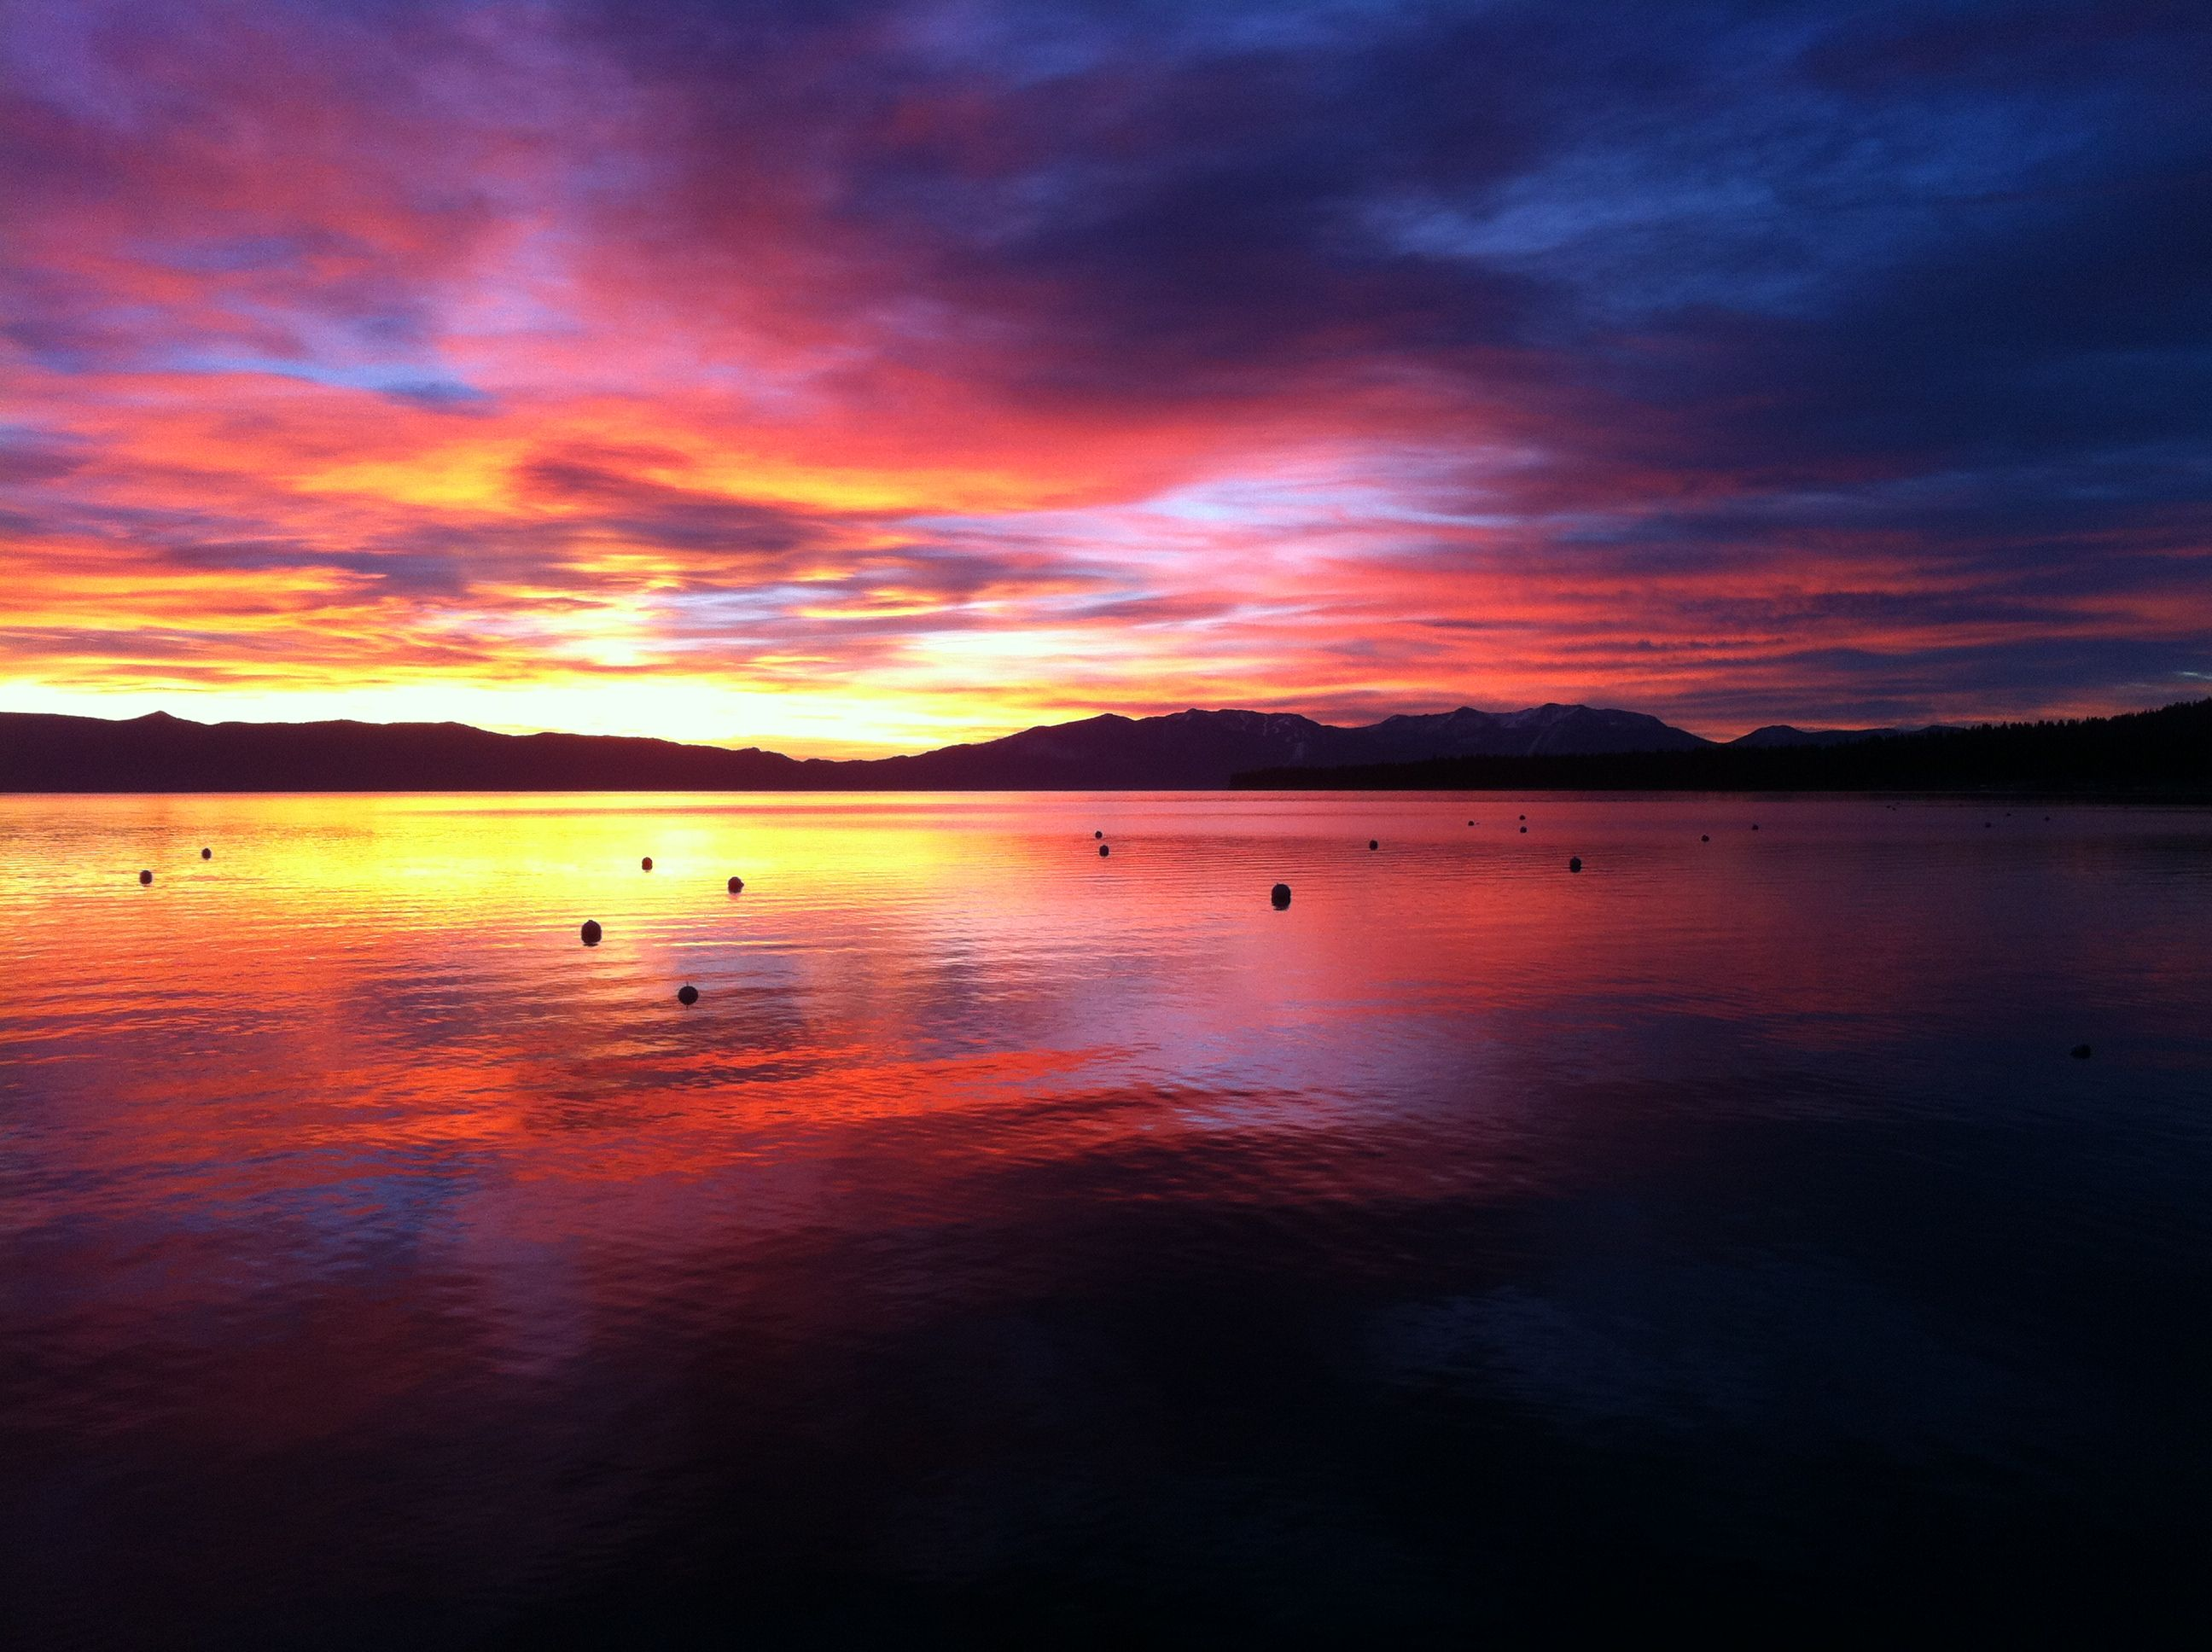 Lake tahoe sunset travel channel pinterest - Sunrise On The West Shore Of Lake Tahoe